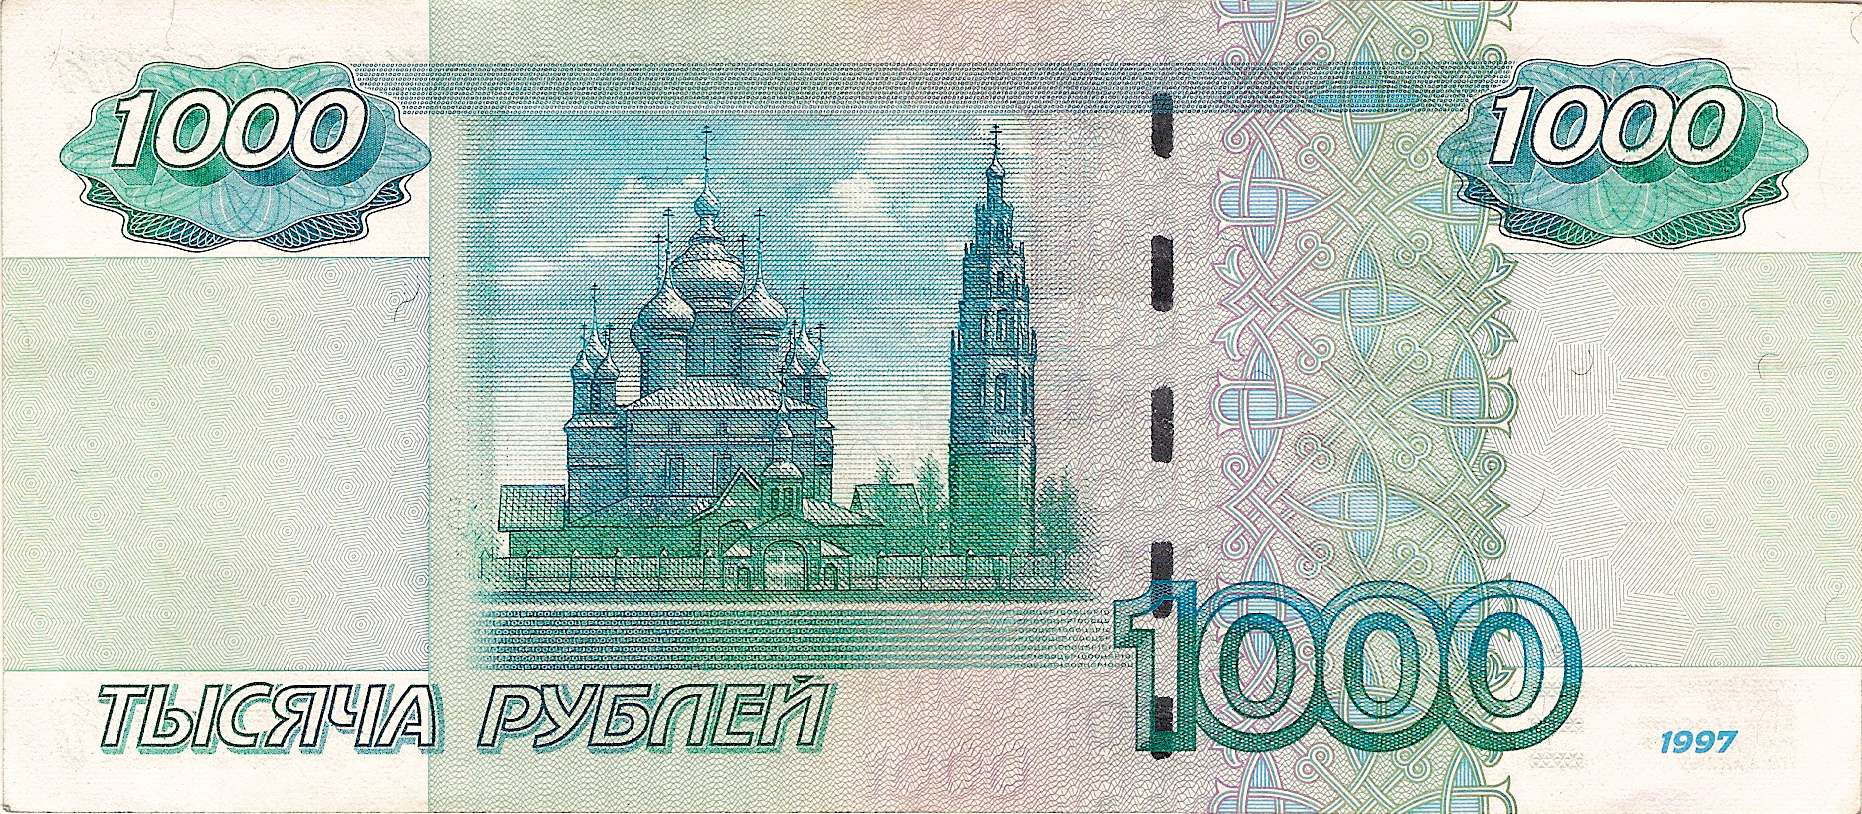 Banknote 1000 rubles 2004 back